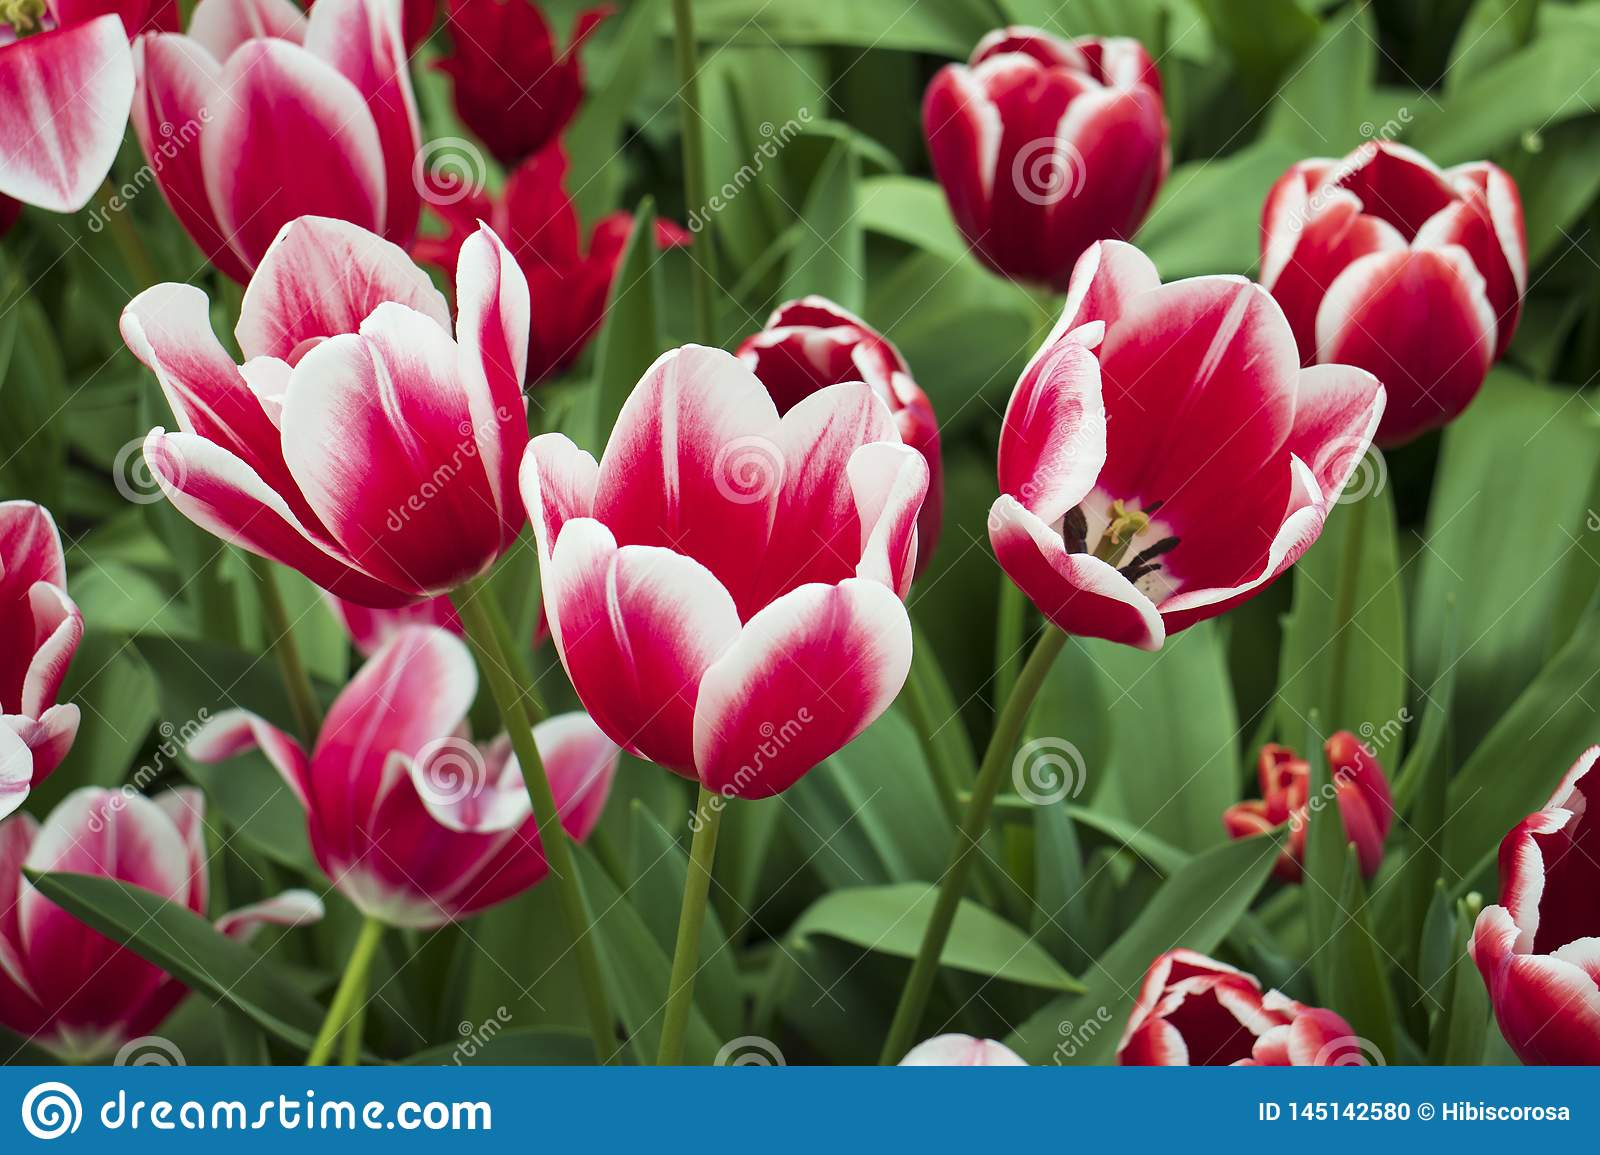 Beautiful and colorful tulips in the park